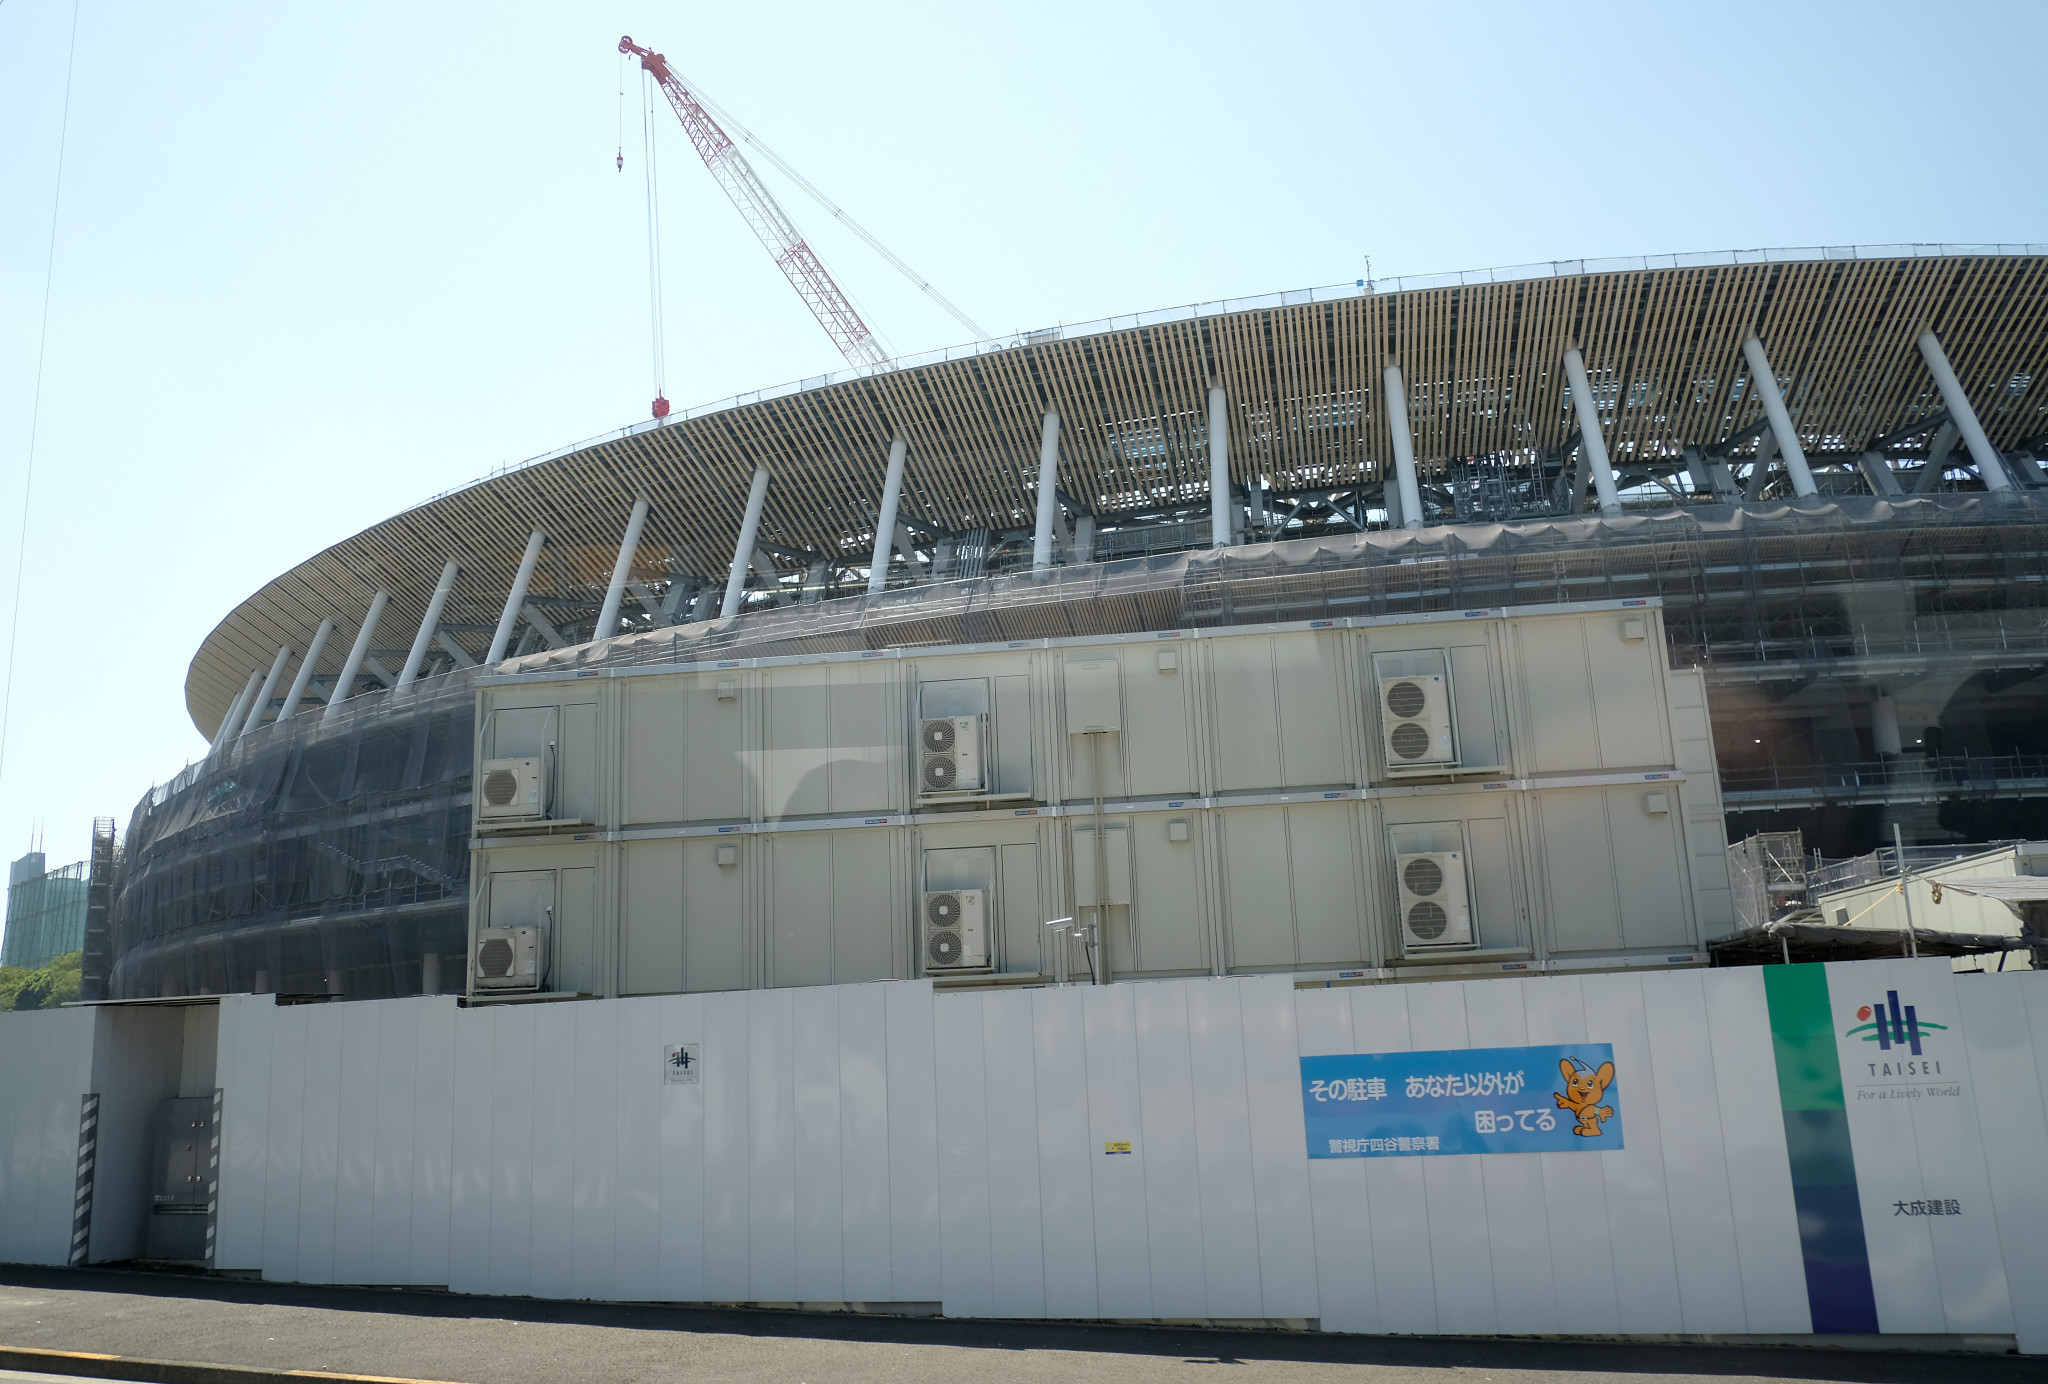 Tokyo 2020 Olympic Stadium to hold 68,000 fans